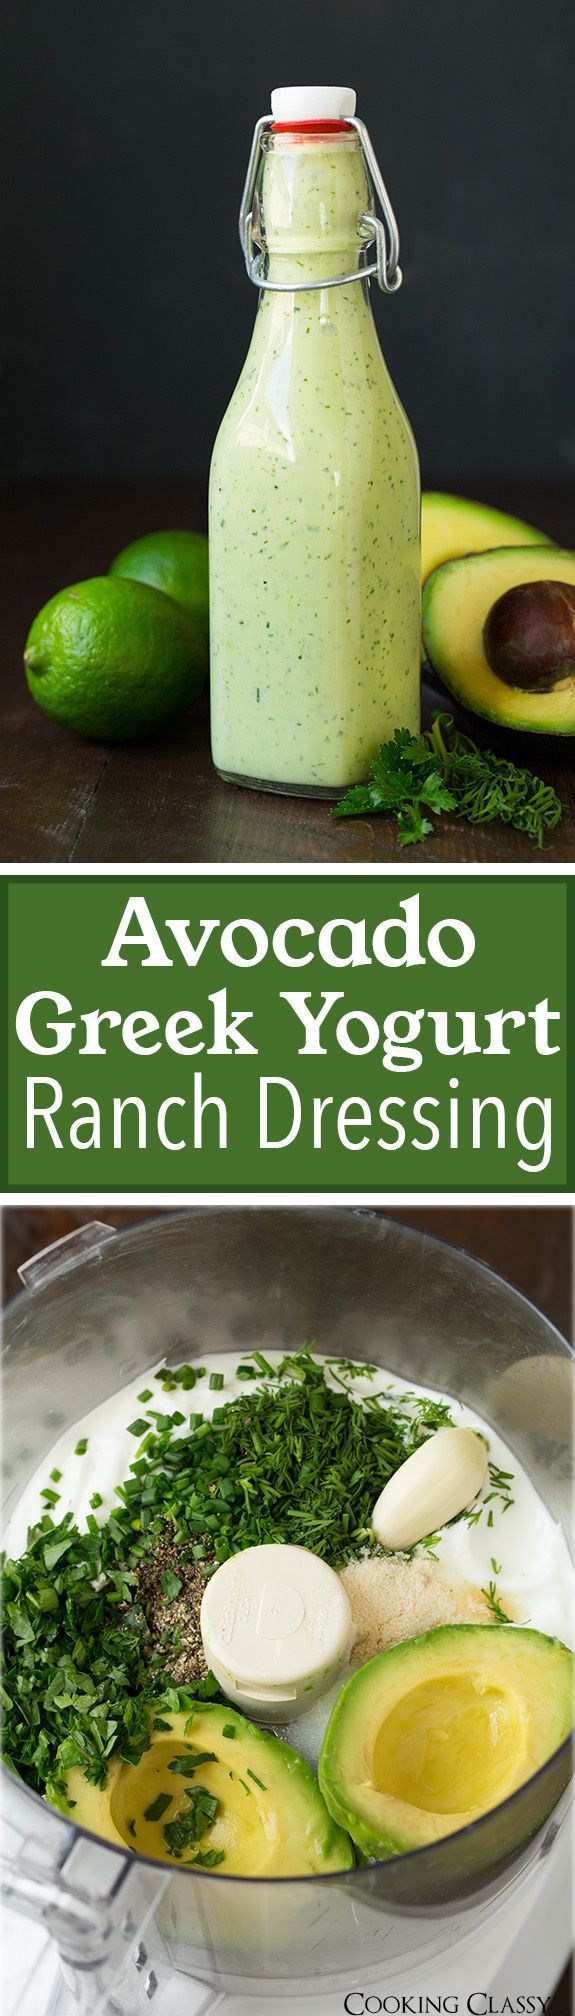 Avocado Greek Yogurt Ranch Dressing - easy, made from scratch and so delicious!! Can be used as a veggie dip too, just omit the milk.